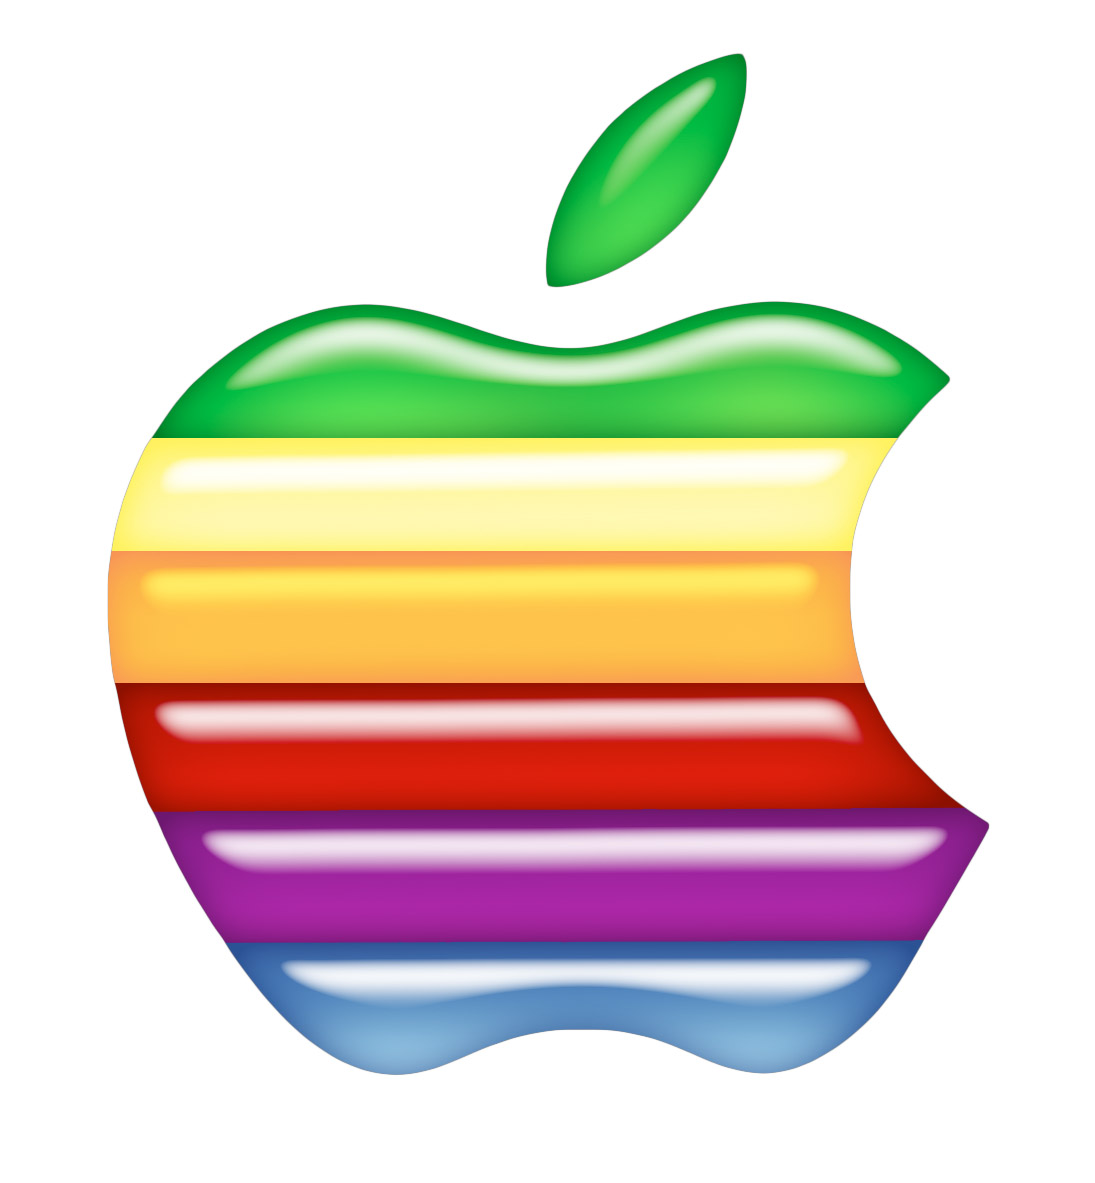 1095x1183 What If Apple's Logo Underwent A Major Redesign What Might That